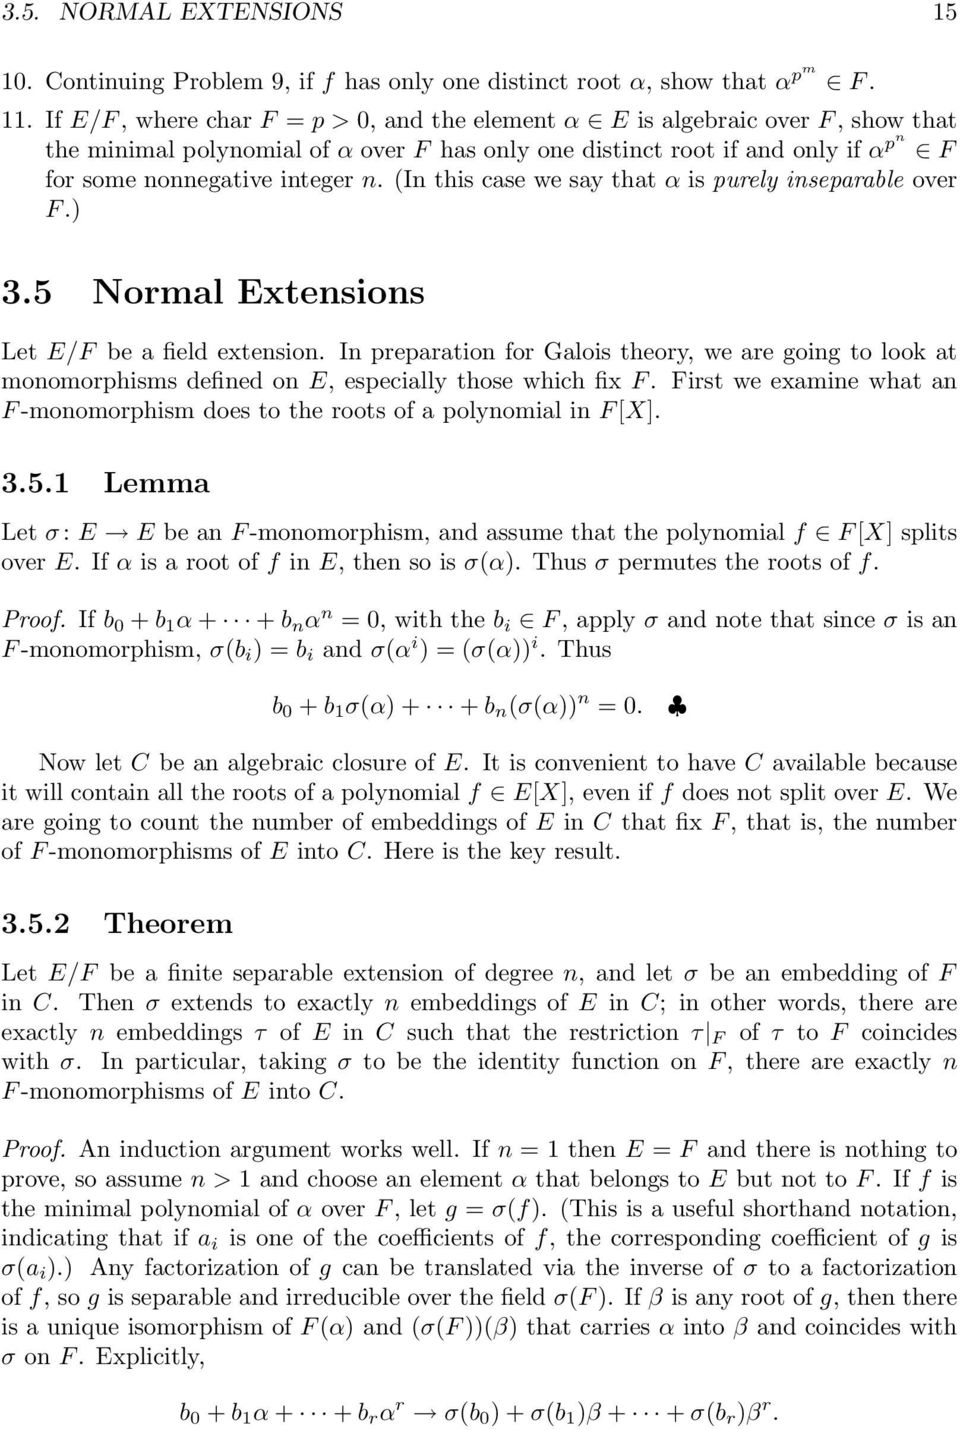 field extensions and galois theory